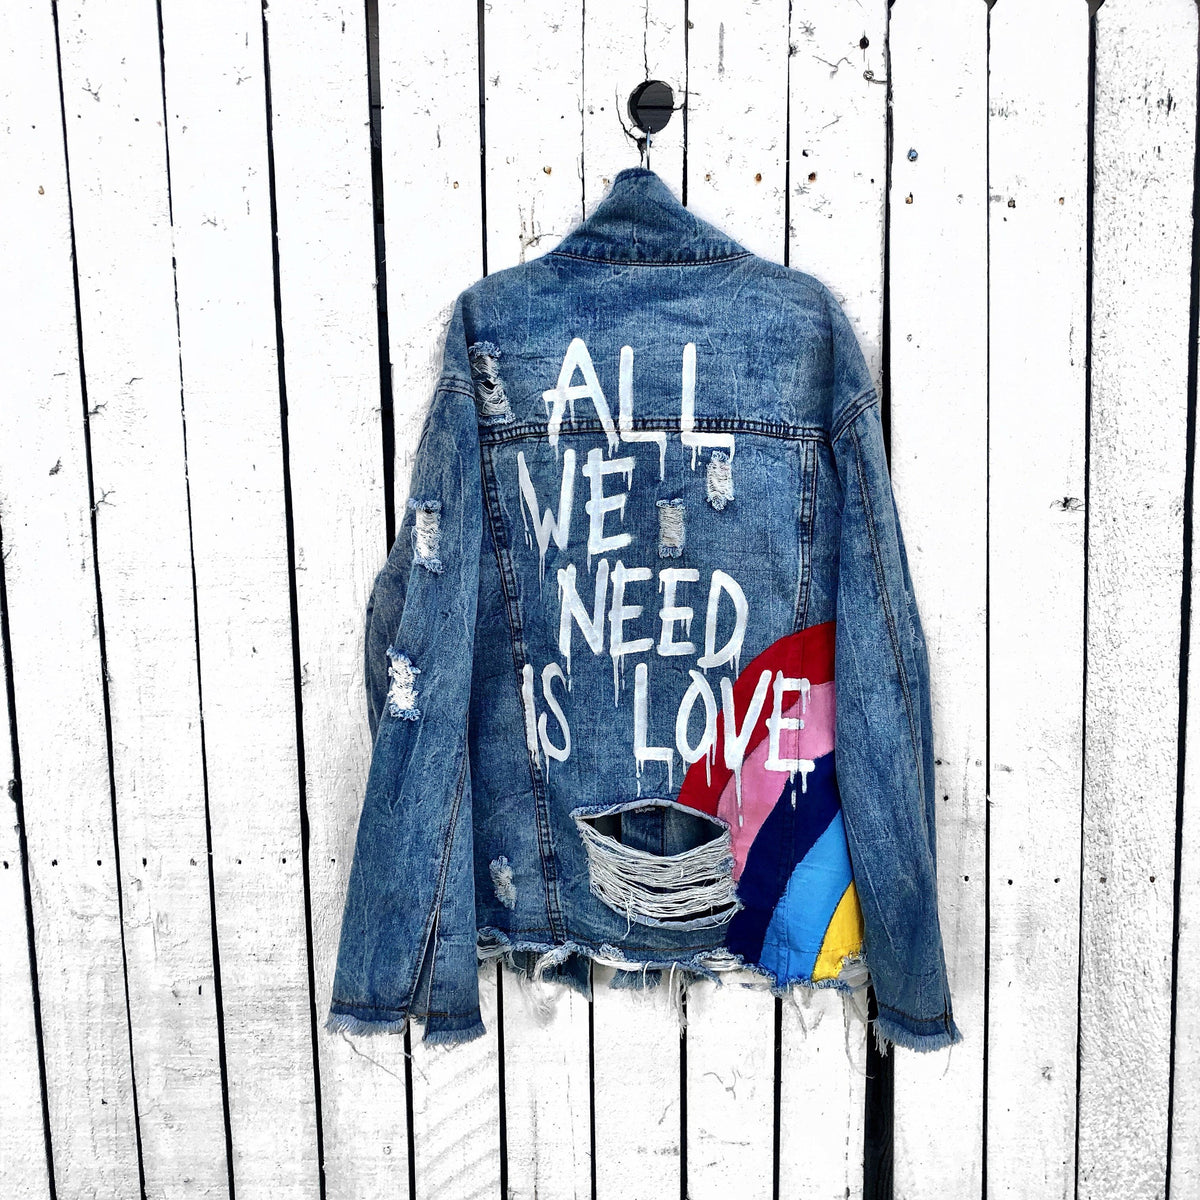 Medium blue denim wash. Large rainbow, spreading across the back to the front, with 'All We Need Is Love' painted in white with a dripping effect. Signed @wrenandglory.